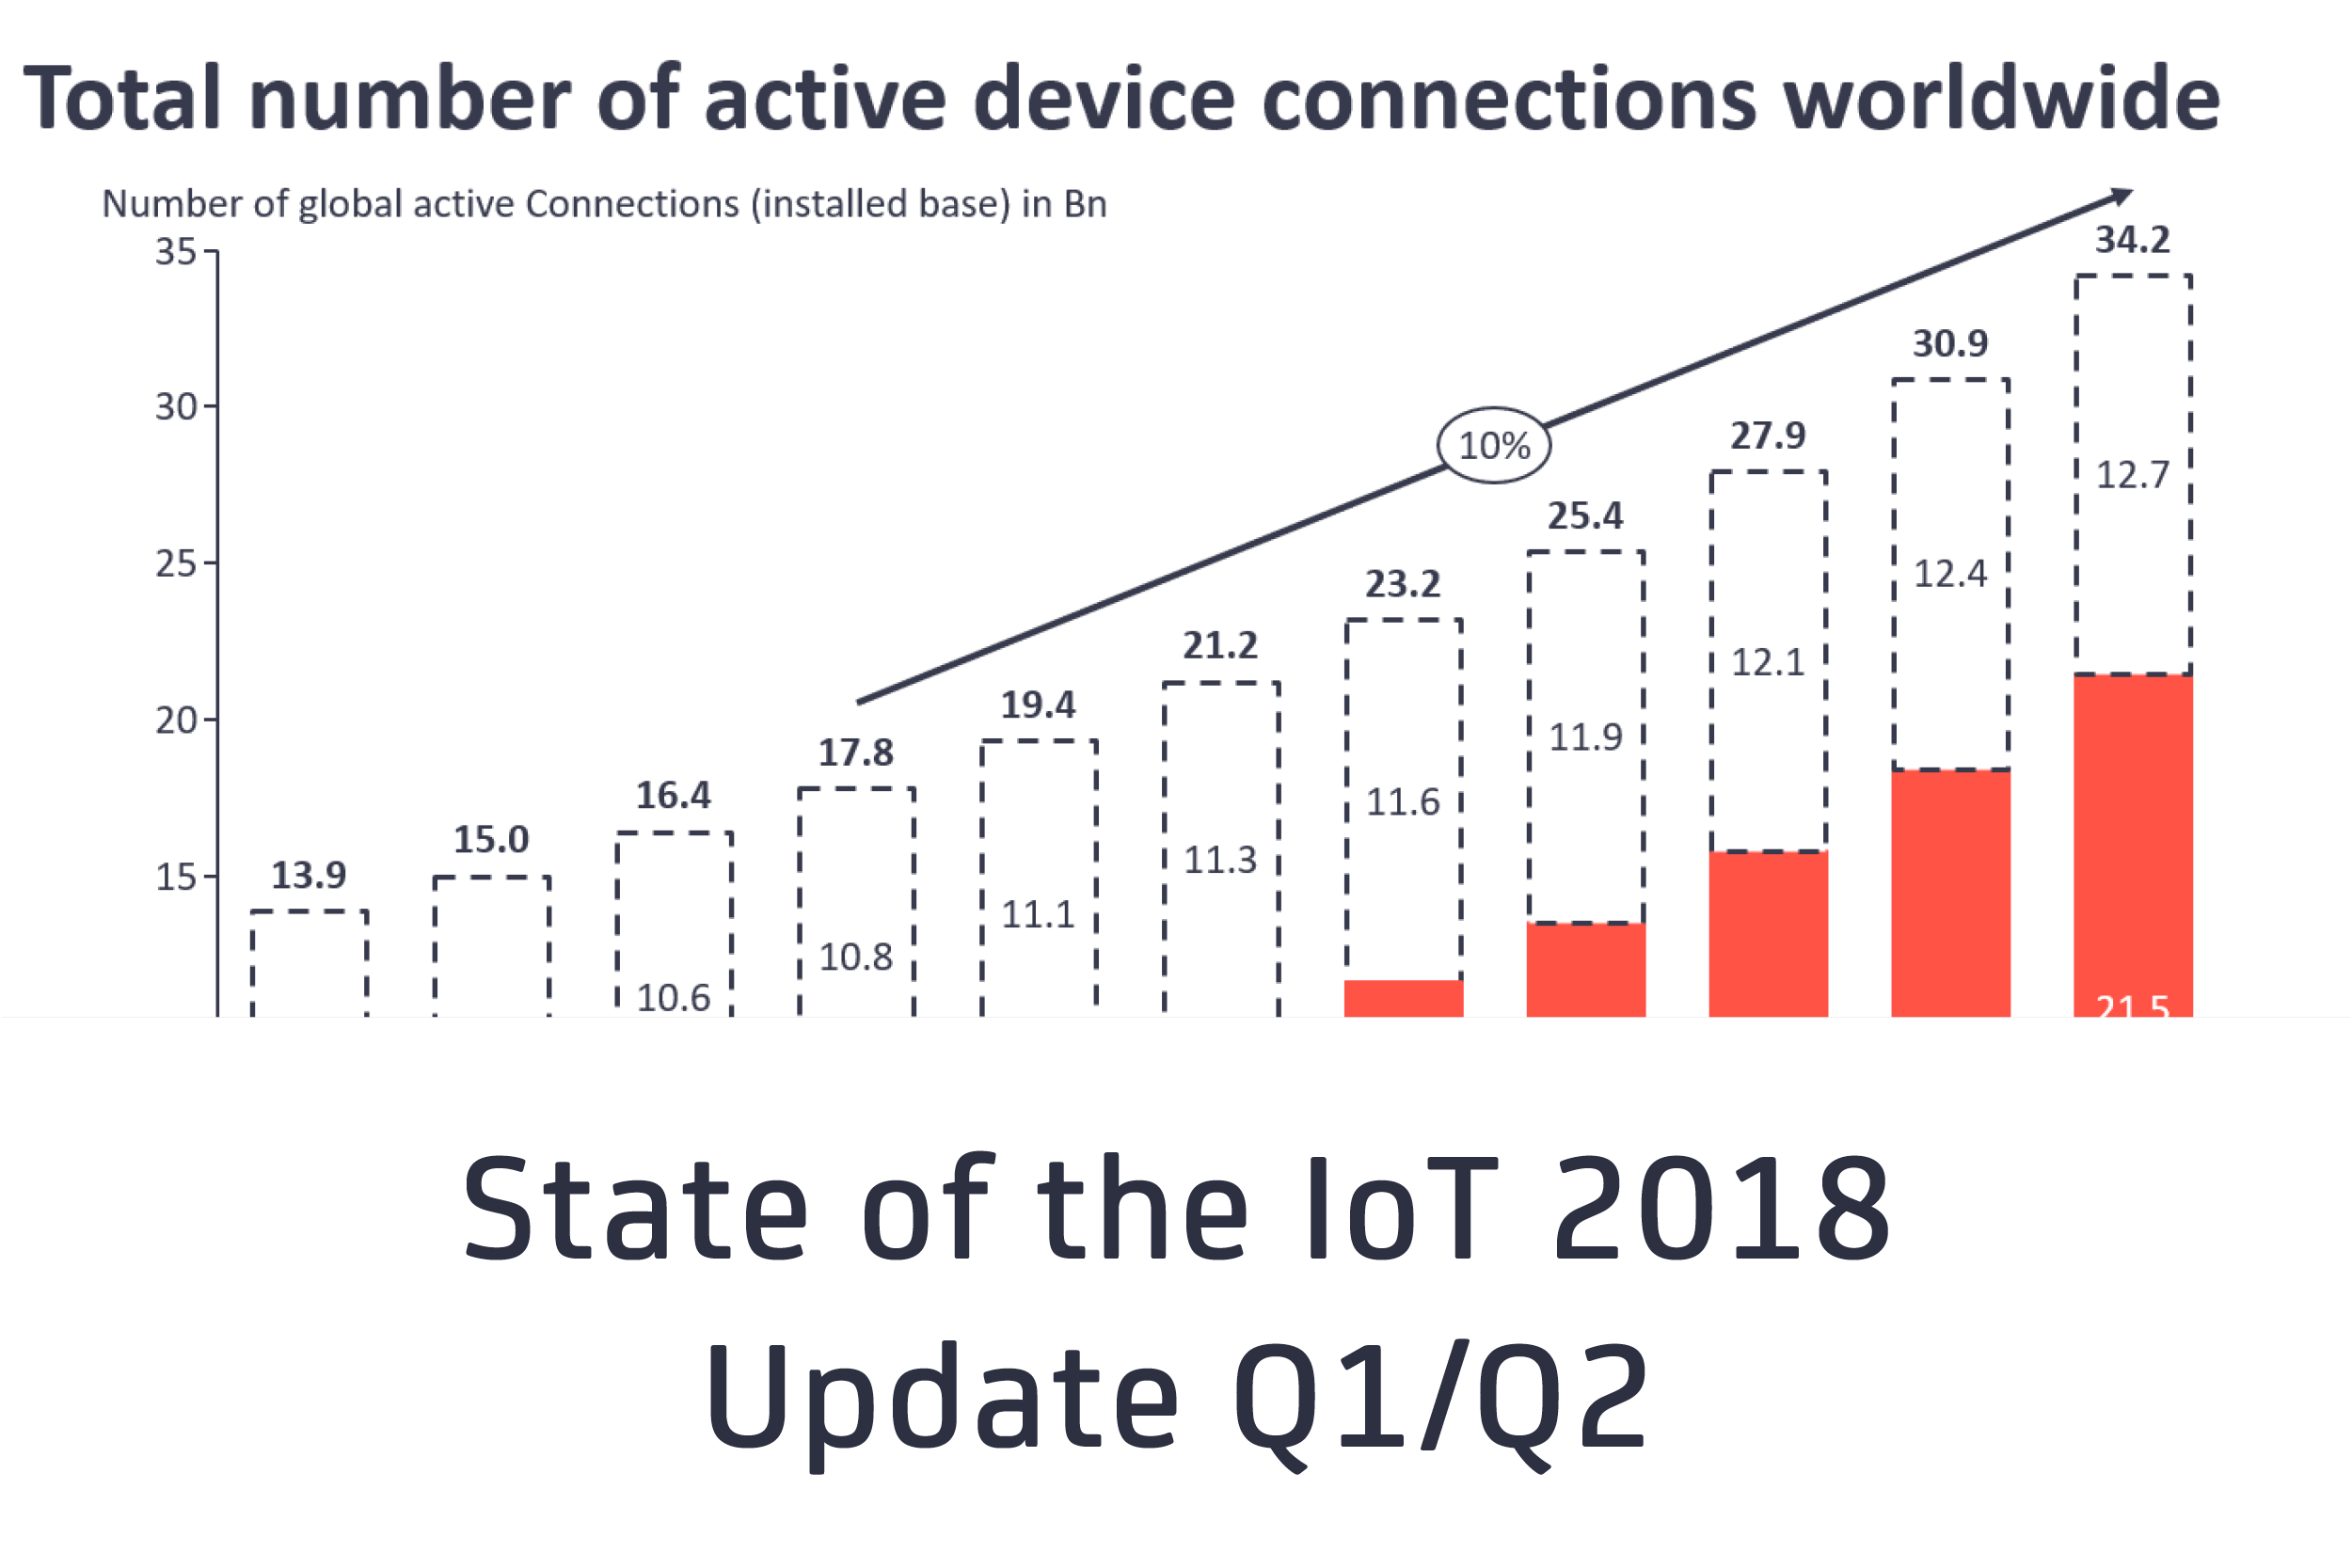 State of the IoT 2018: Number of IoT devices now at 7B – Market